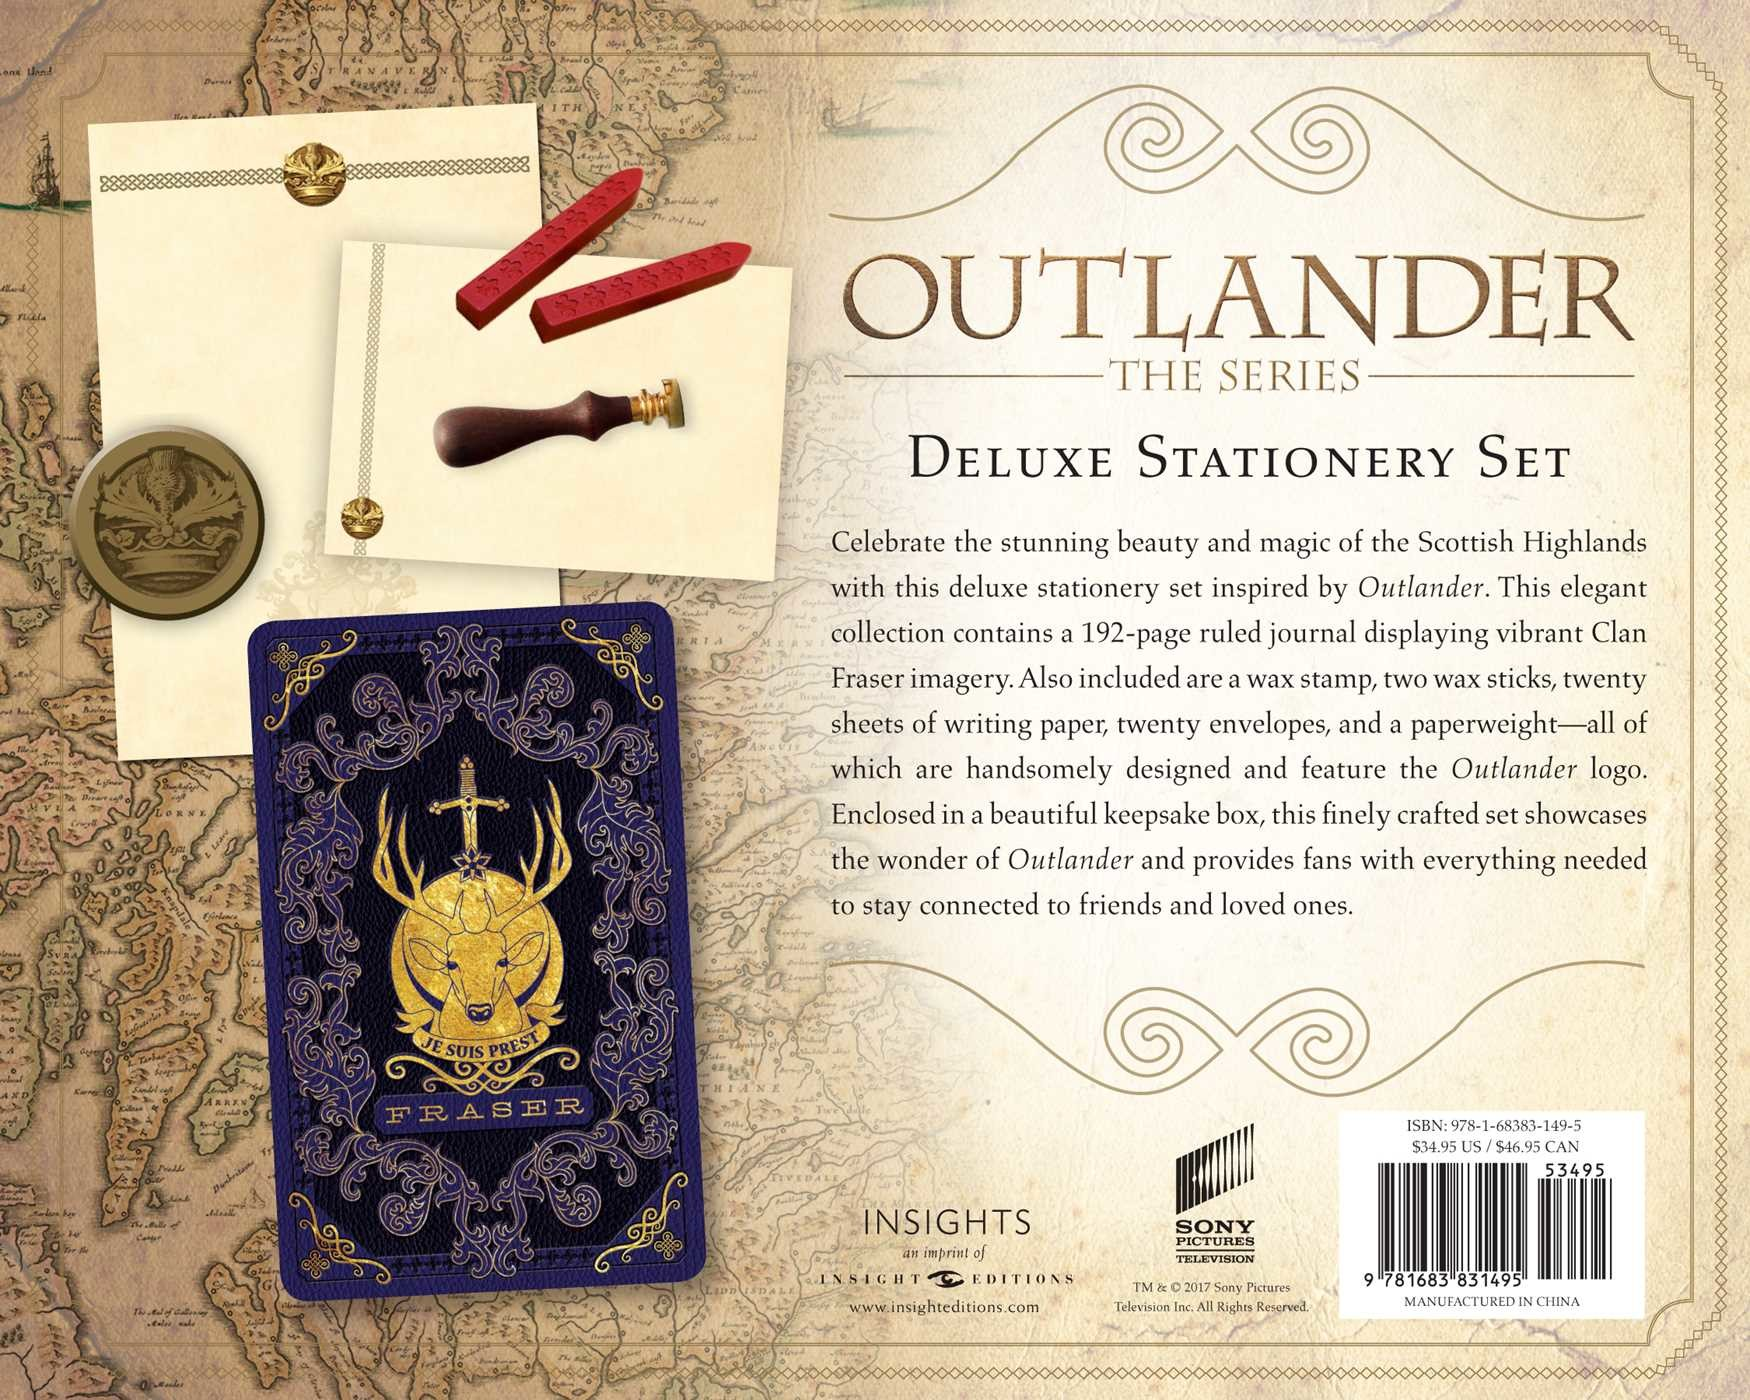 Outlander deluxe stationery set 9781683831495.in03